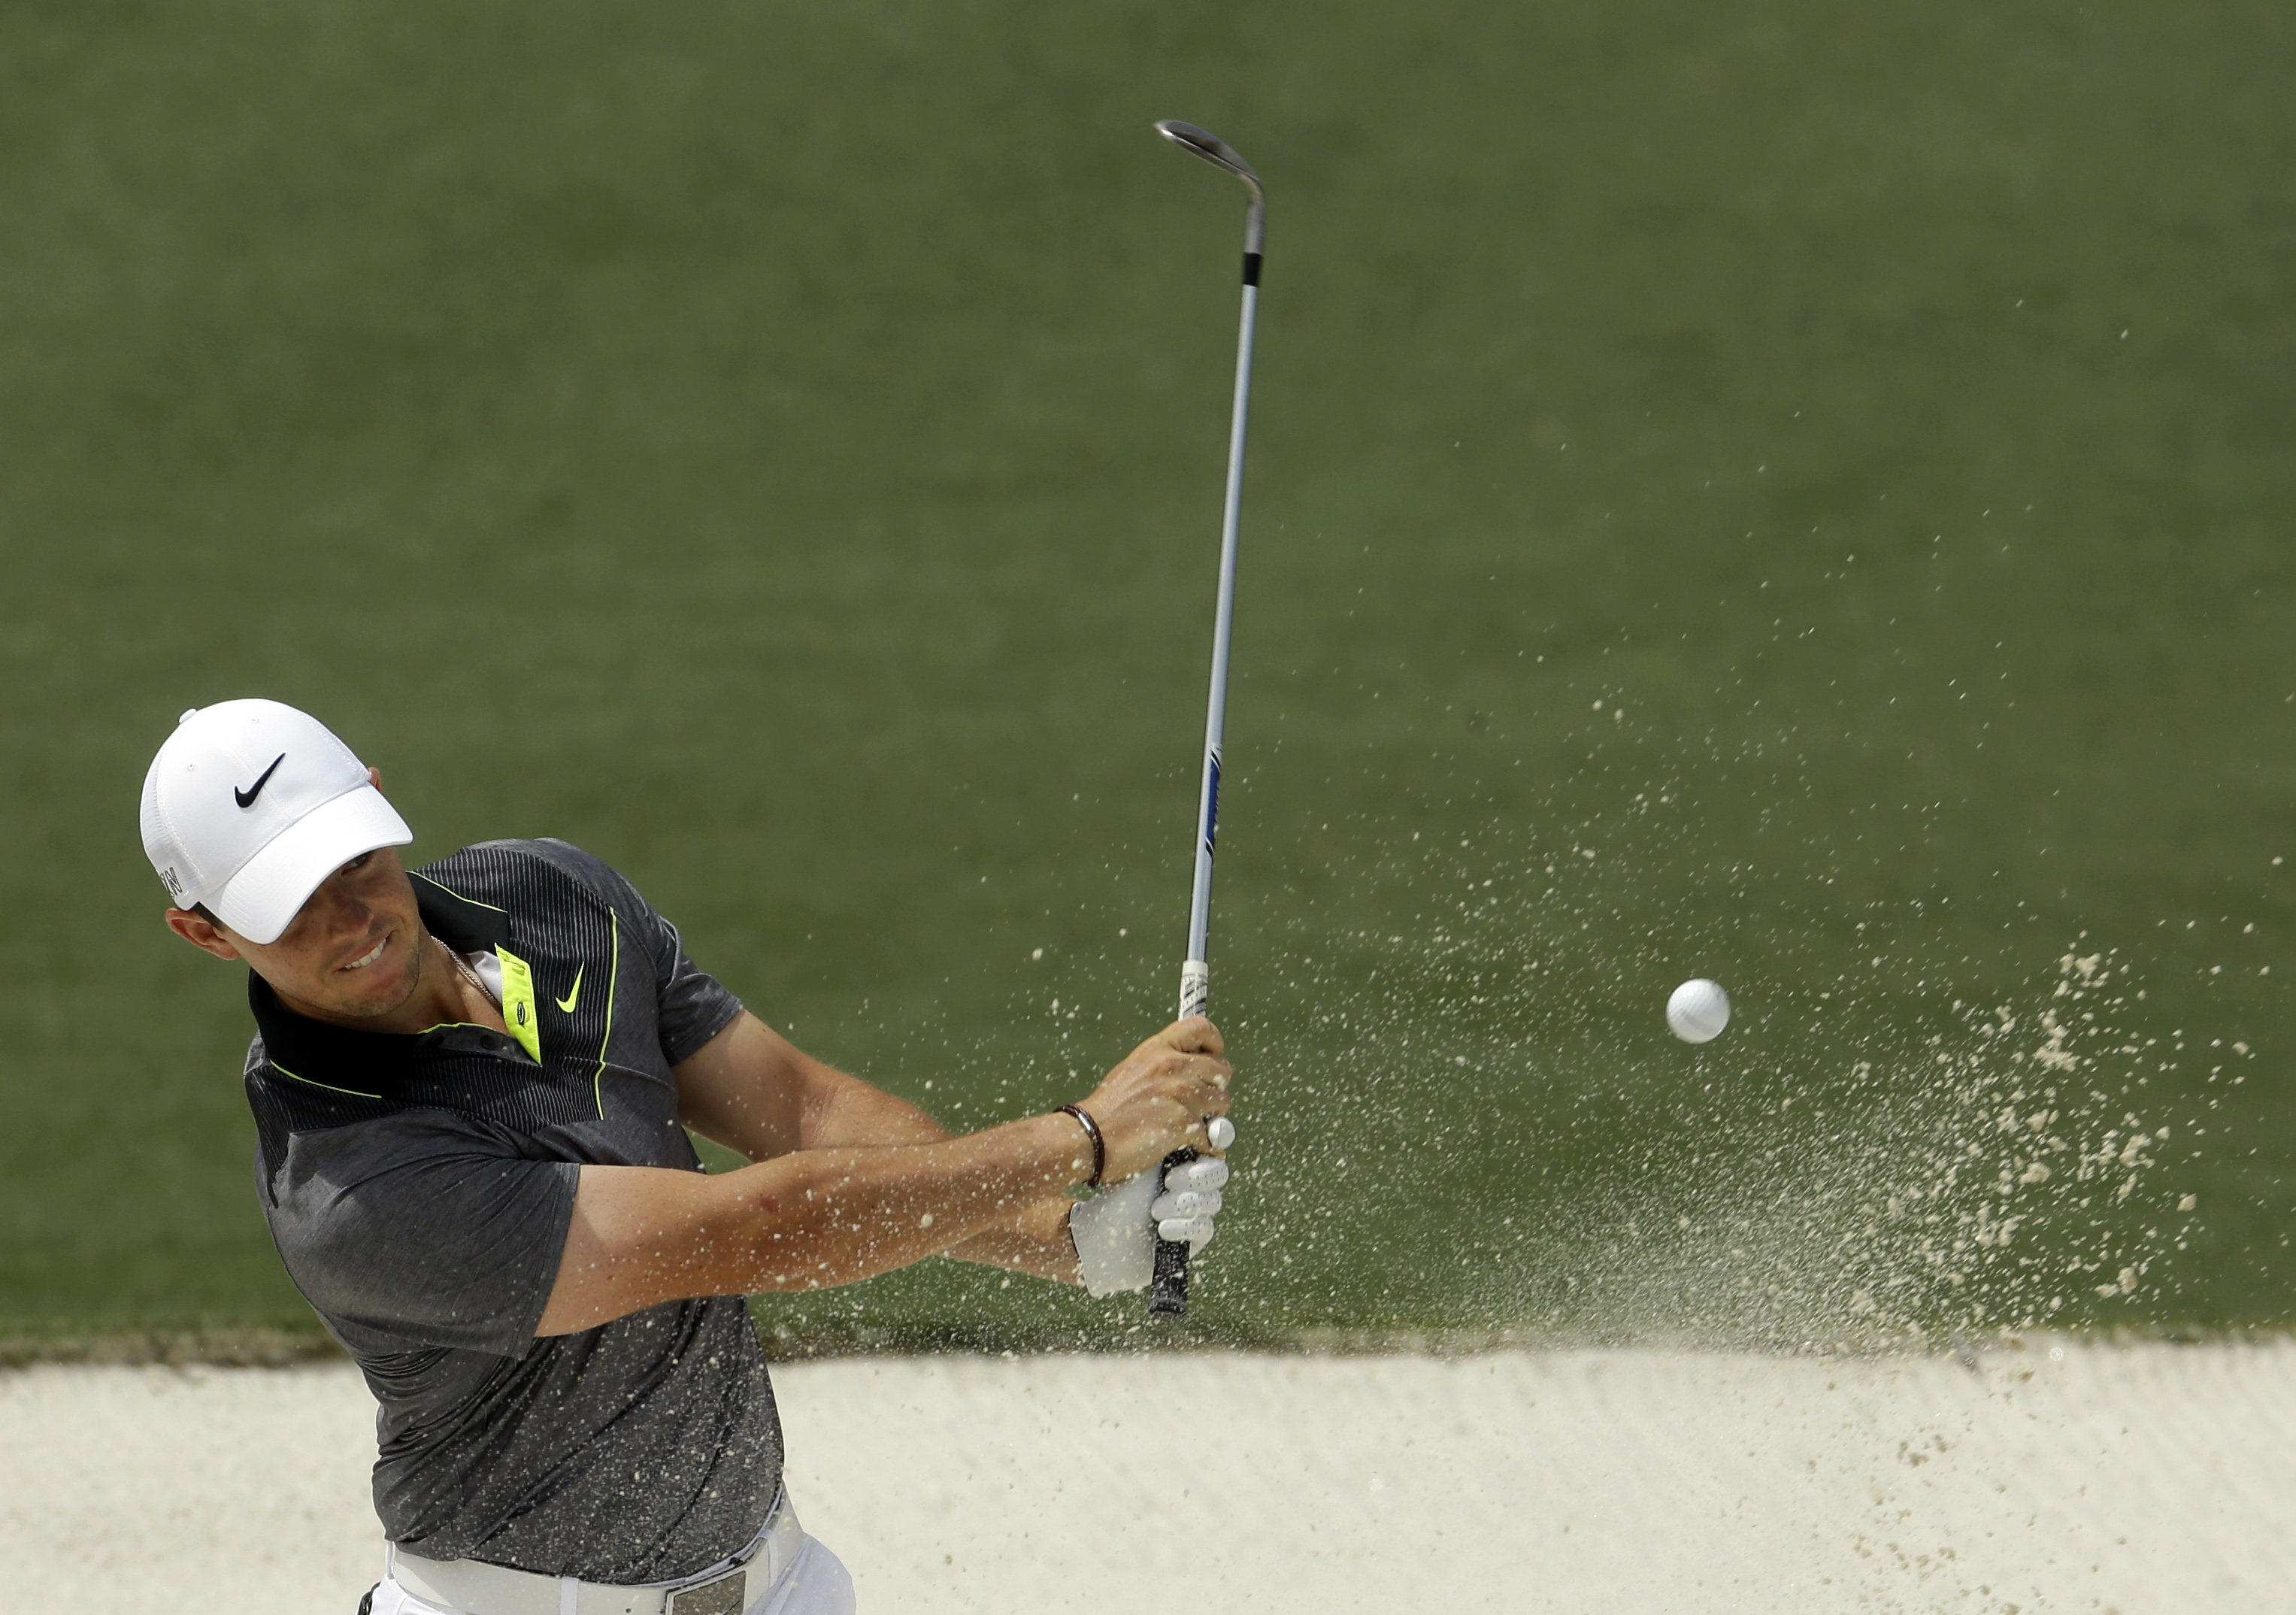 Rory McIlroy, of Northern Ireland, hits out of a bunker on the second hole during the second round of the Masters golf tournament Friday, April 10, 2015, in Augusta, Ga. (AP Photo/Darron Cummings)